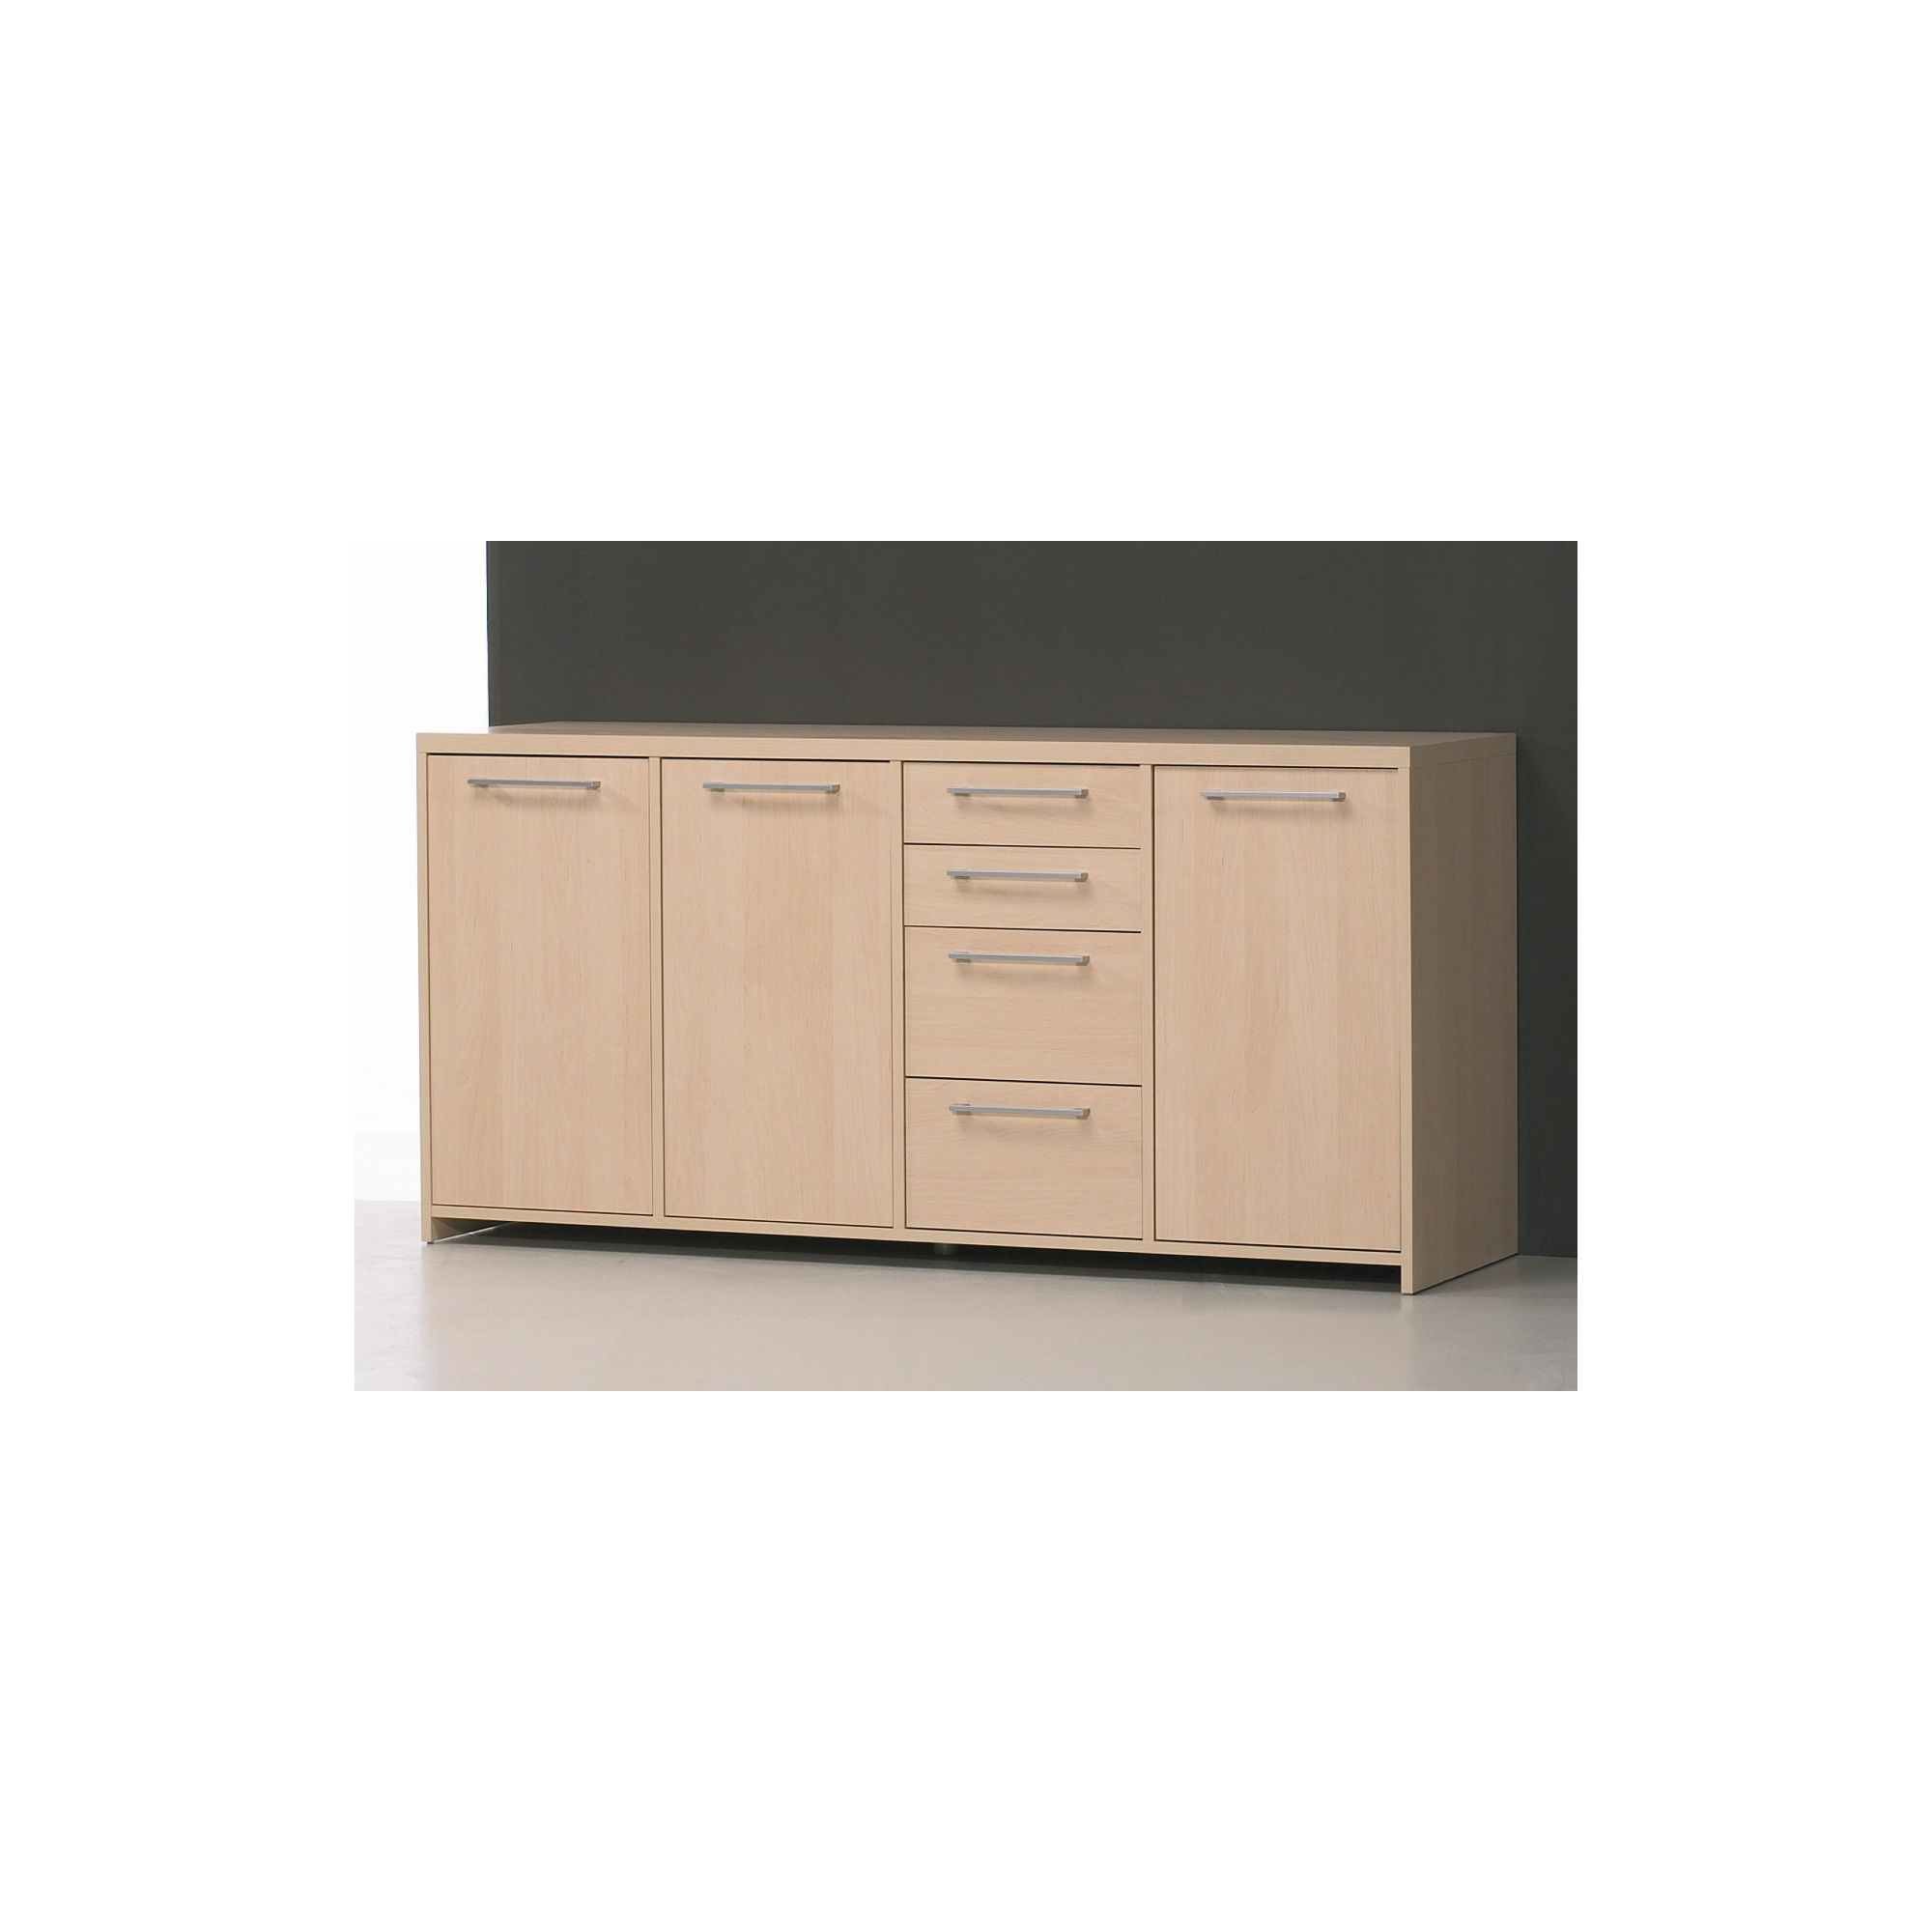 Tvilum Buffer Sideboard in Light Maple - Light Maple at Tesco Direct